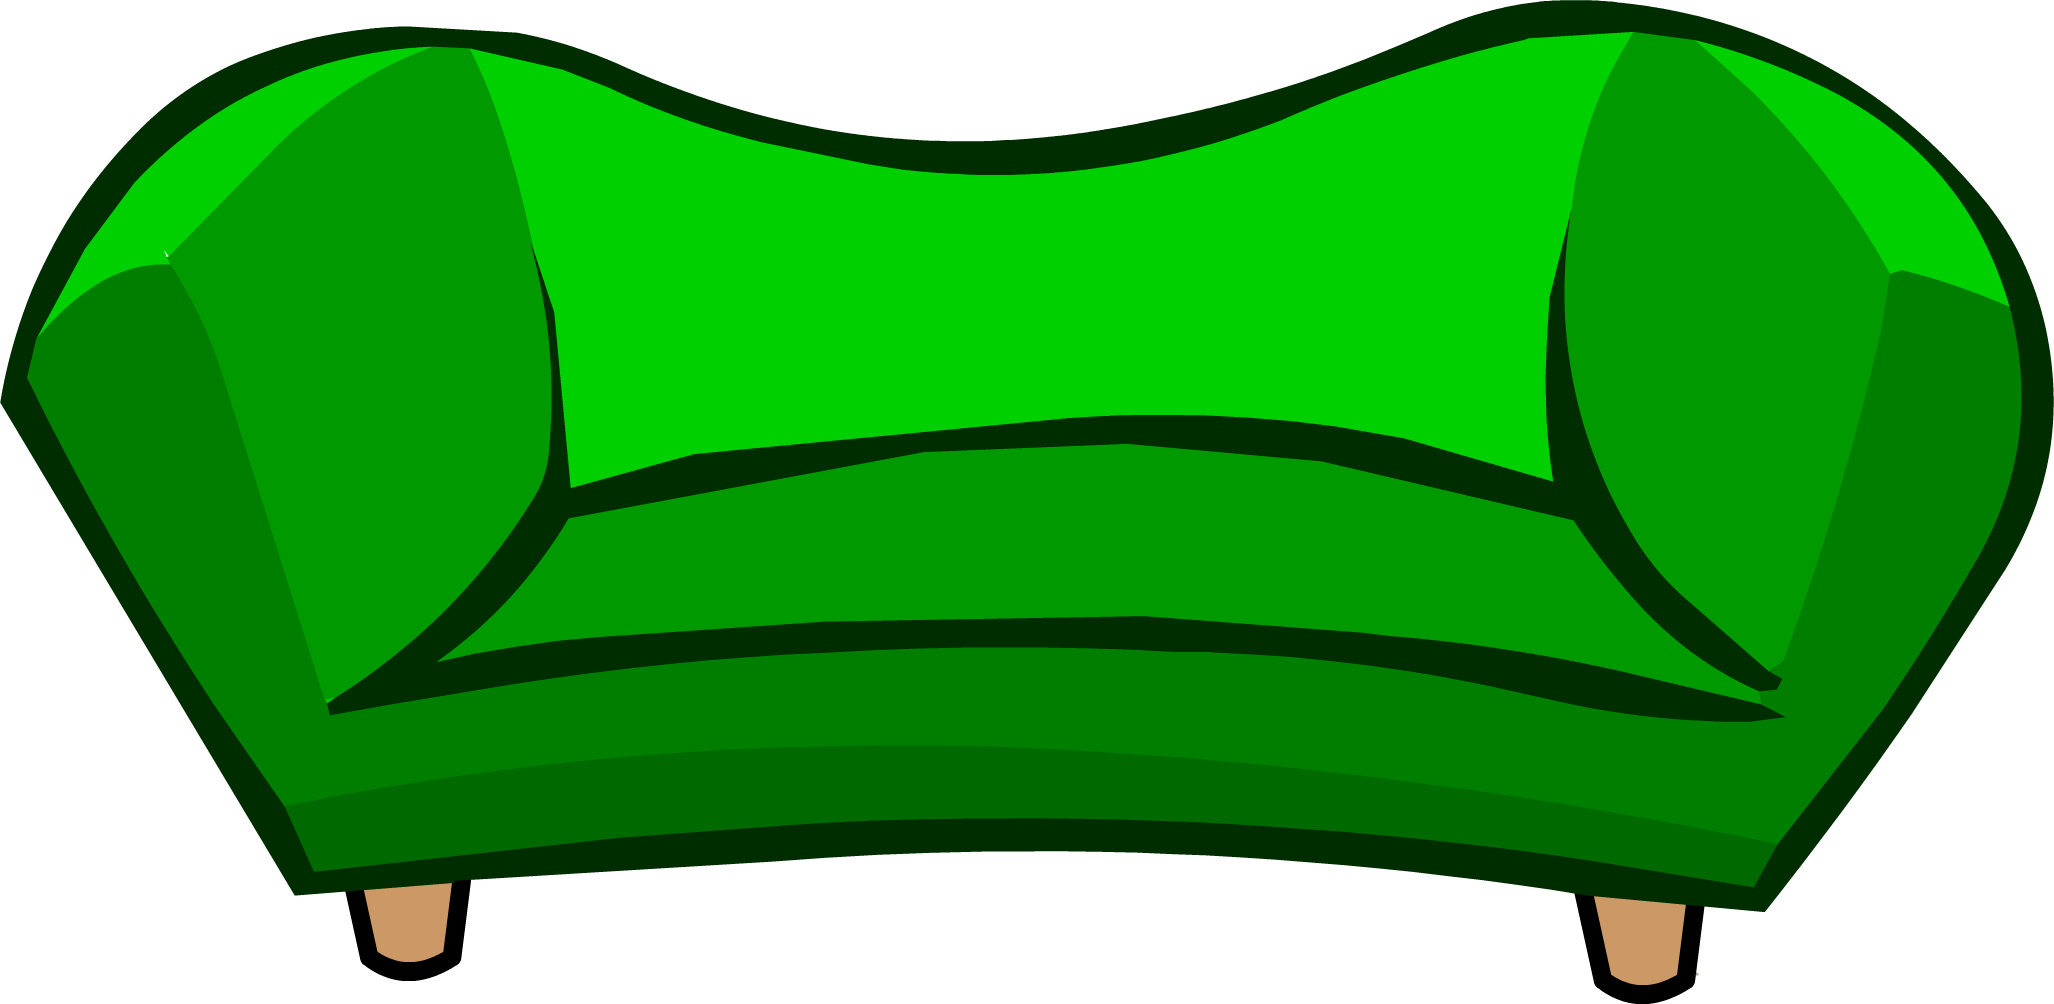 clipart freeuse download Couch clipart green couch